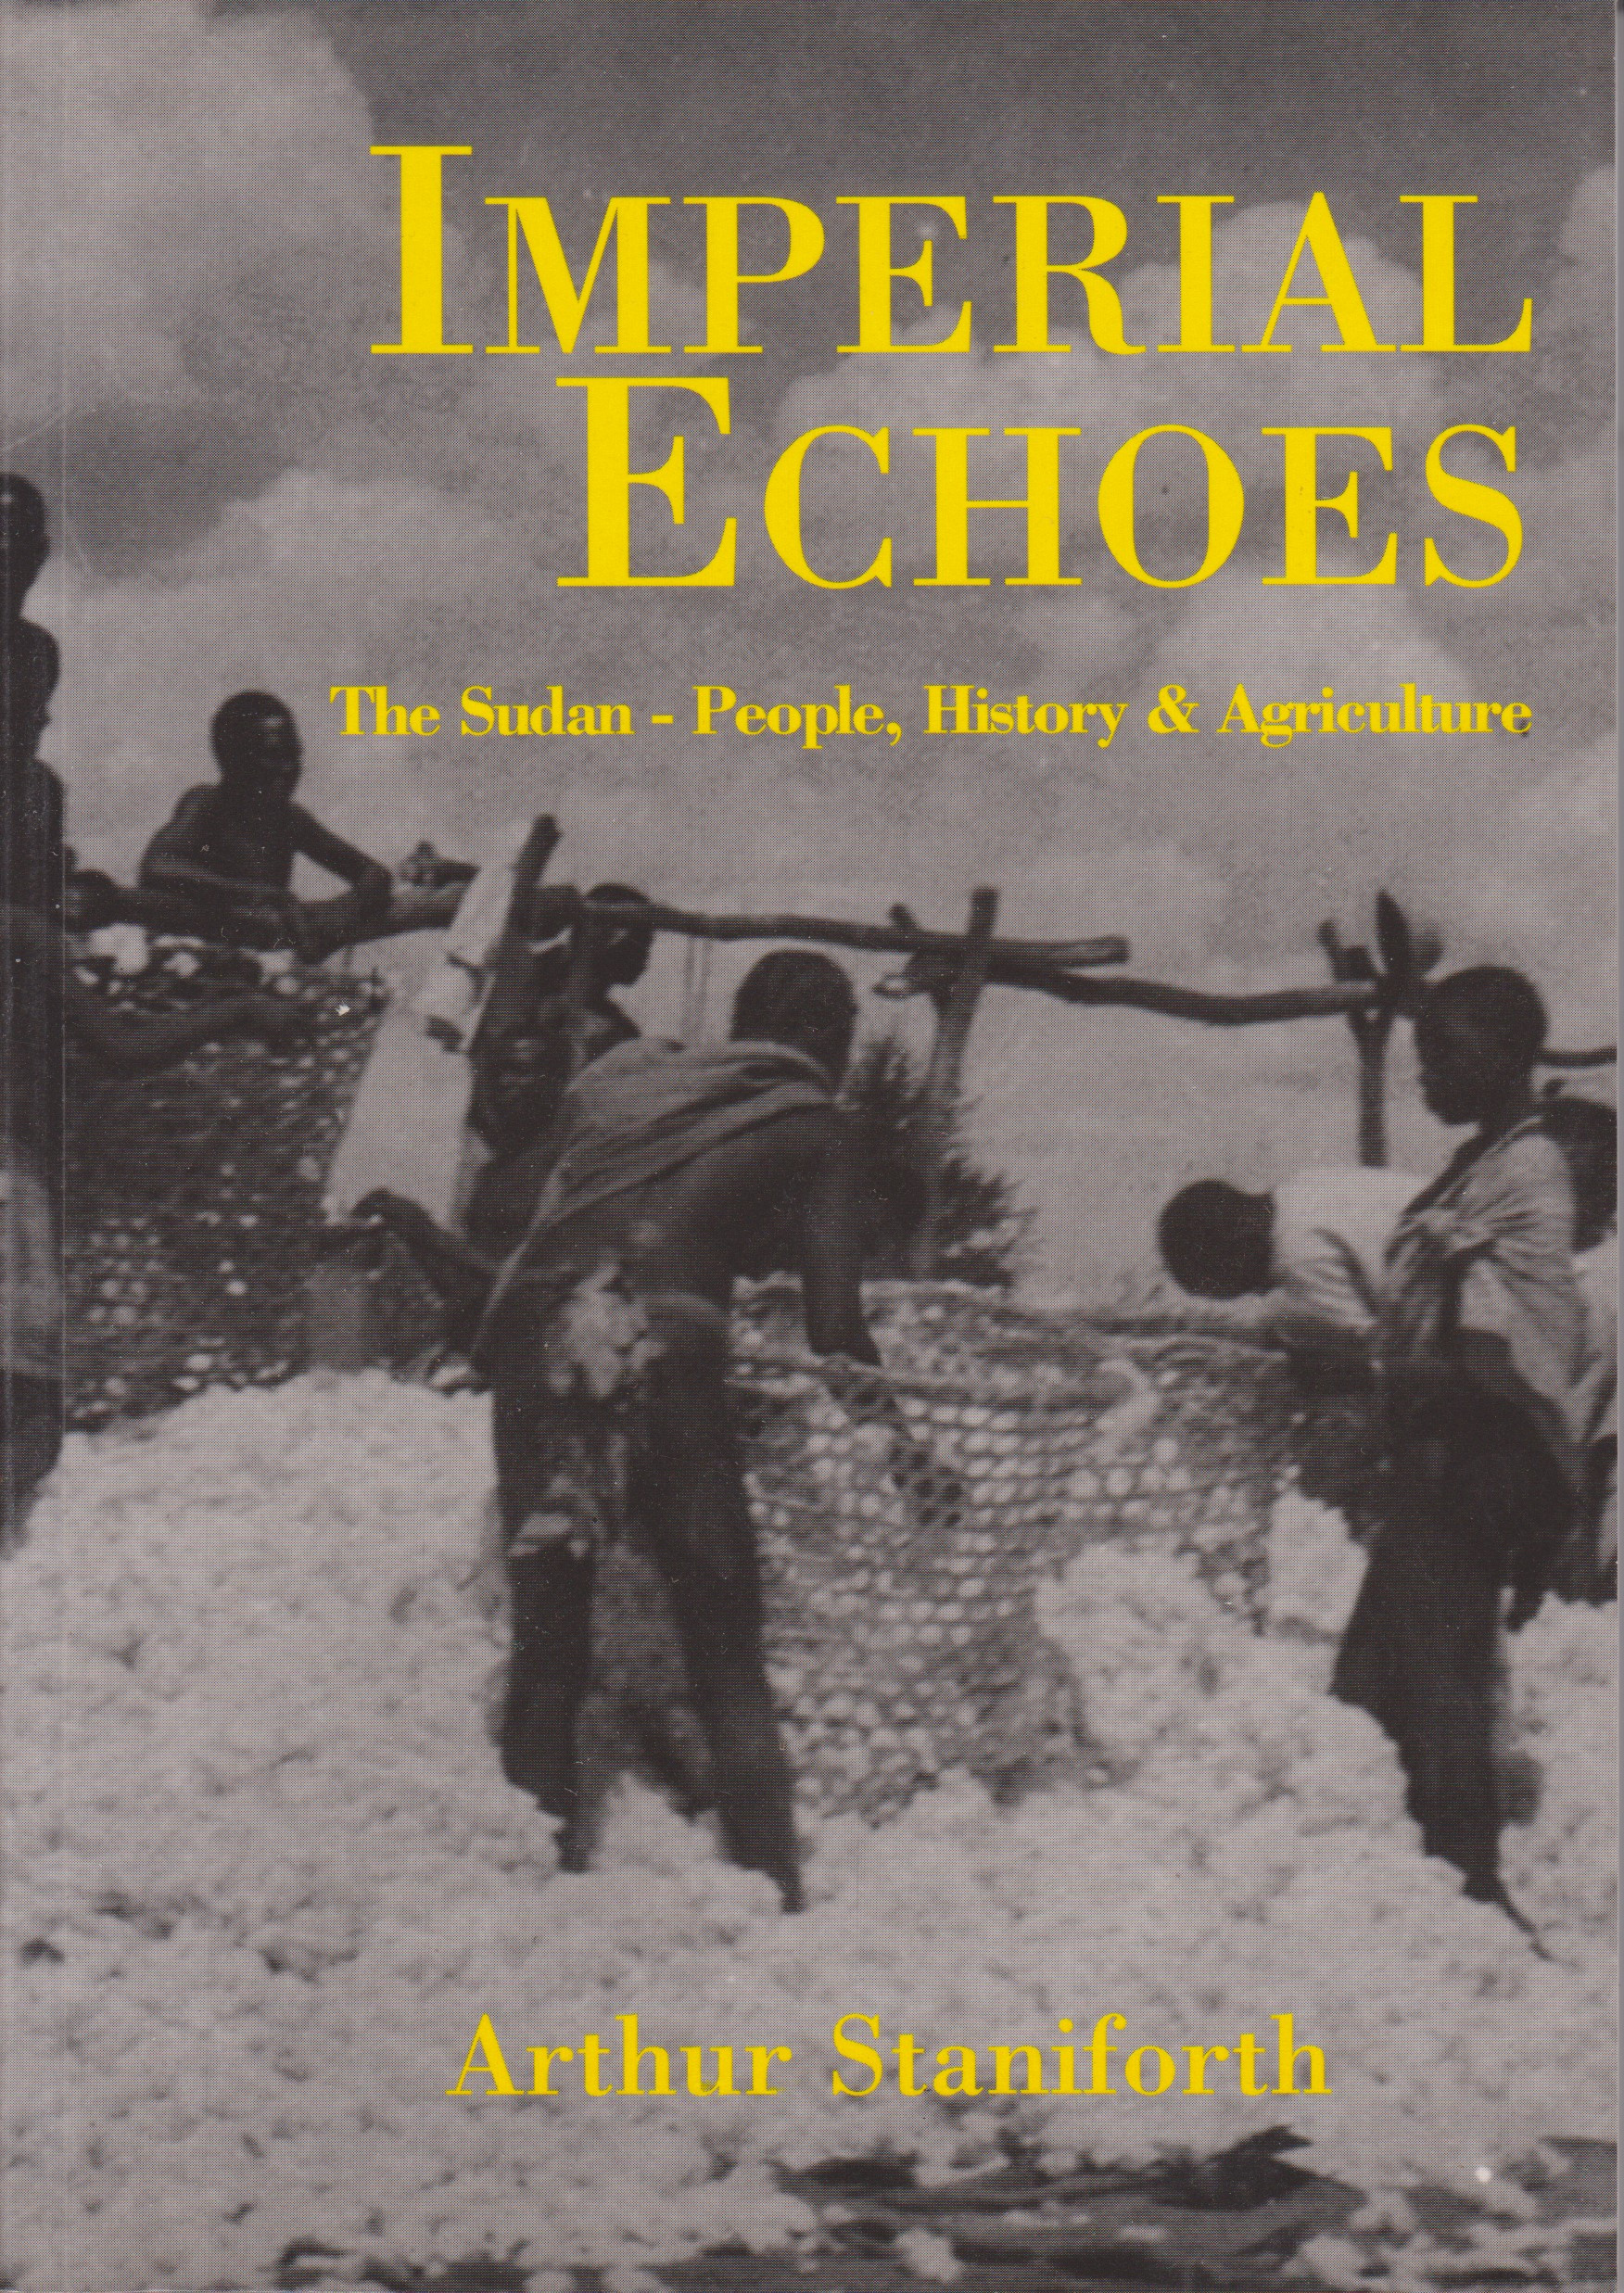 Imperial Echoes: The Sudan-People, History & Agriculture